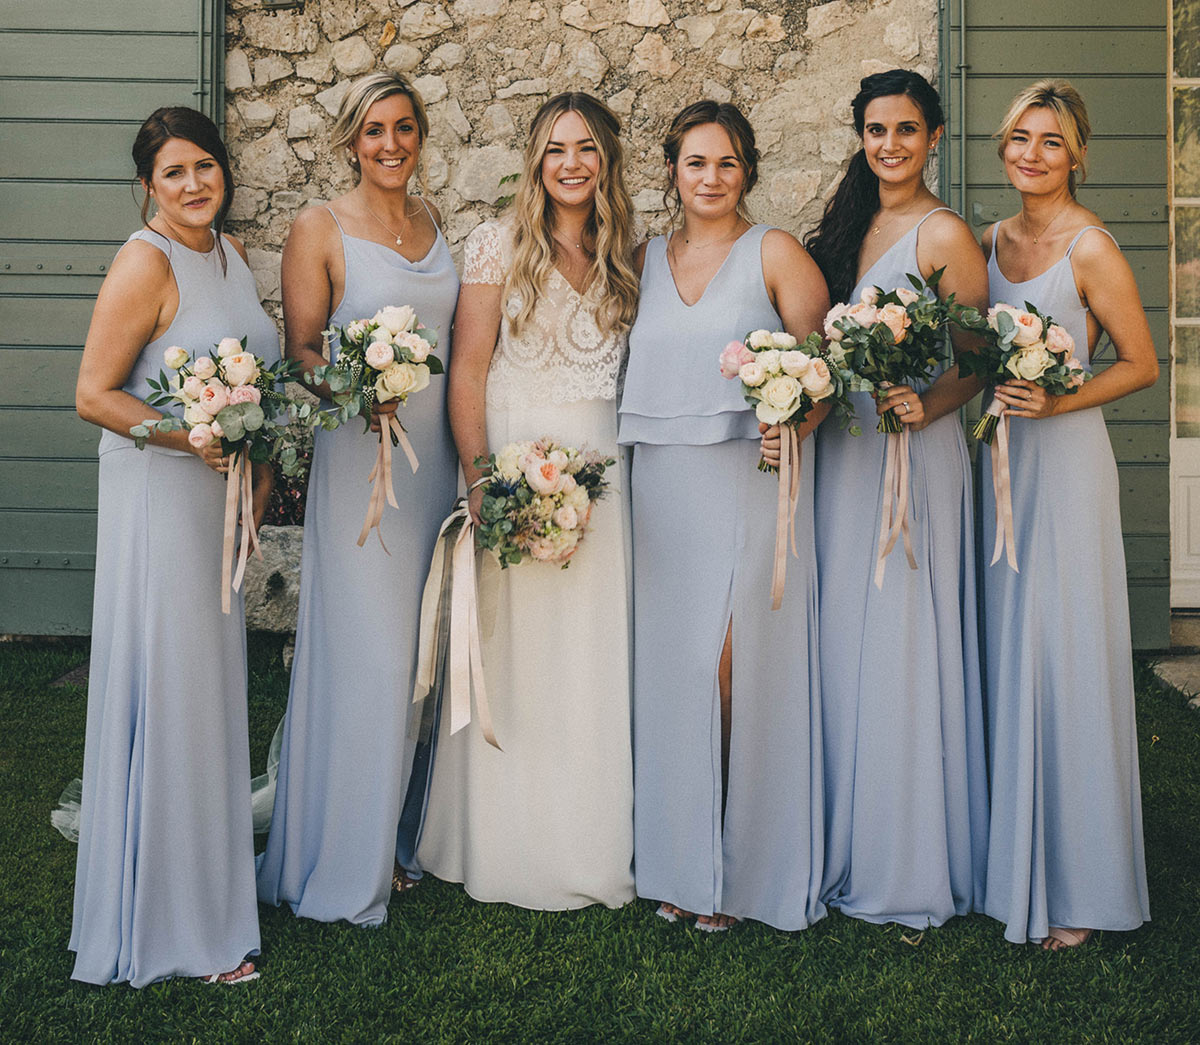 Maddie Chester with her bridemaids. Maddie's bridesmaid were designed and made by us in London to suit her wedding theme colour of light blue.